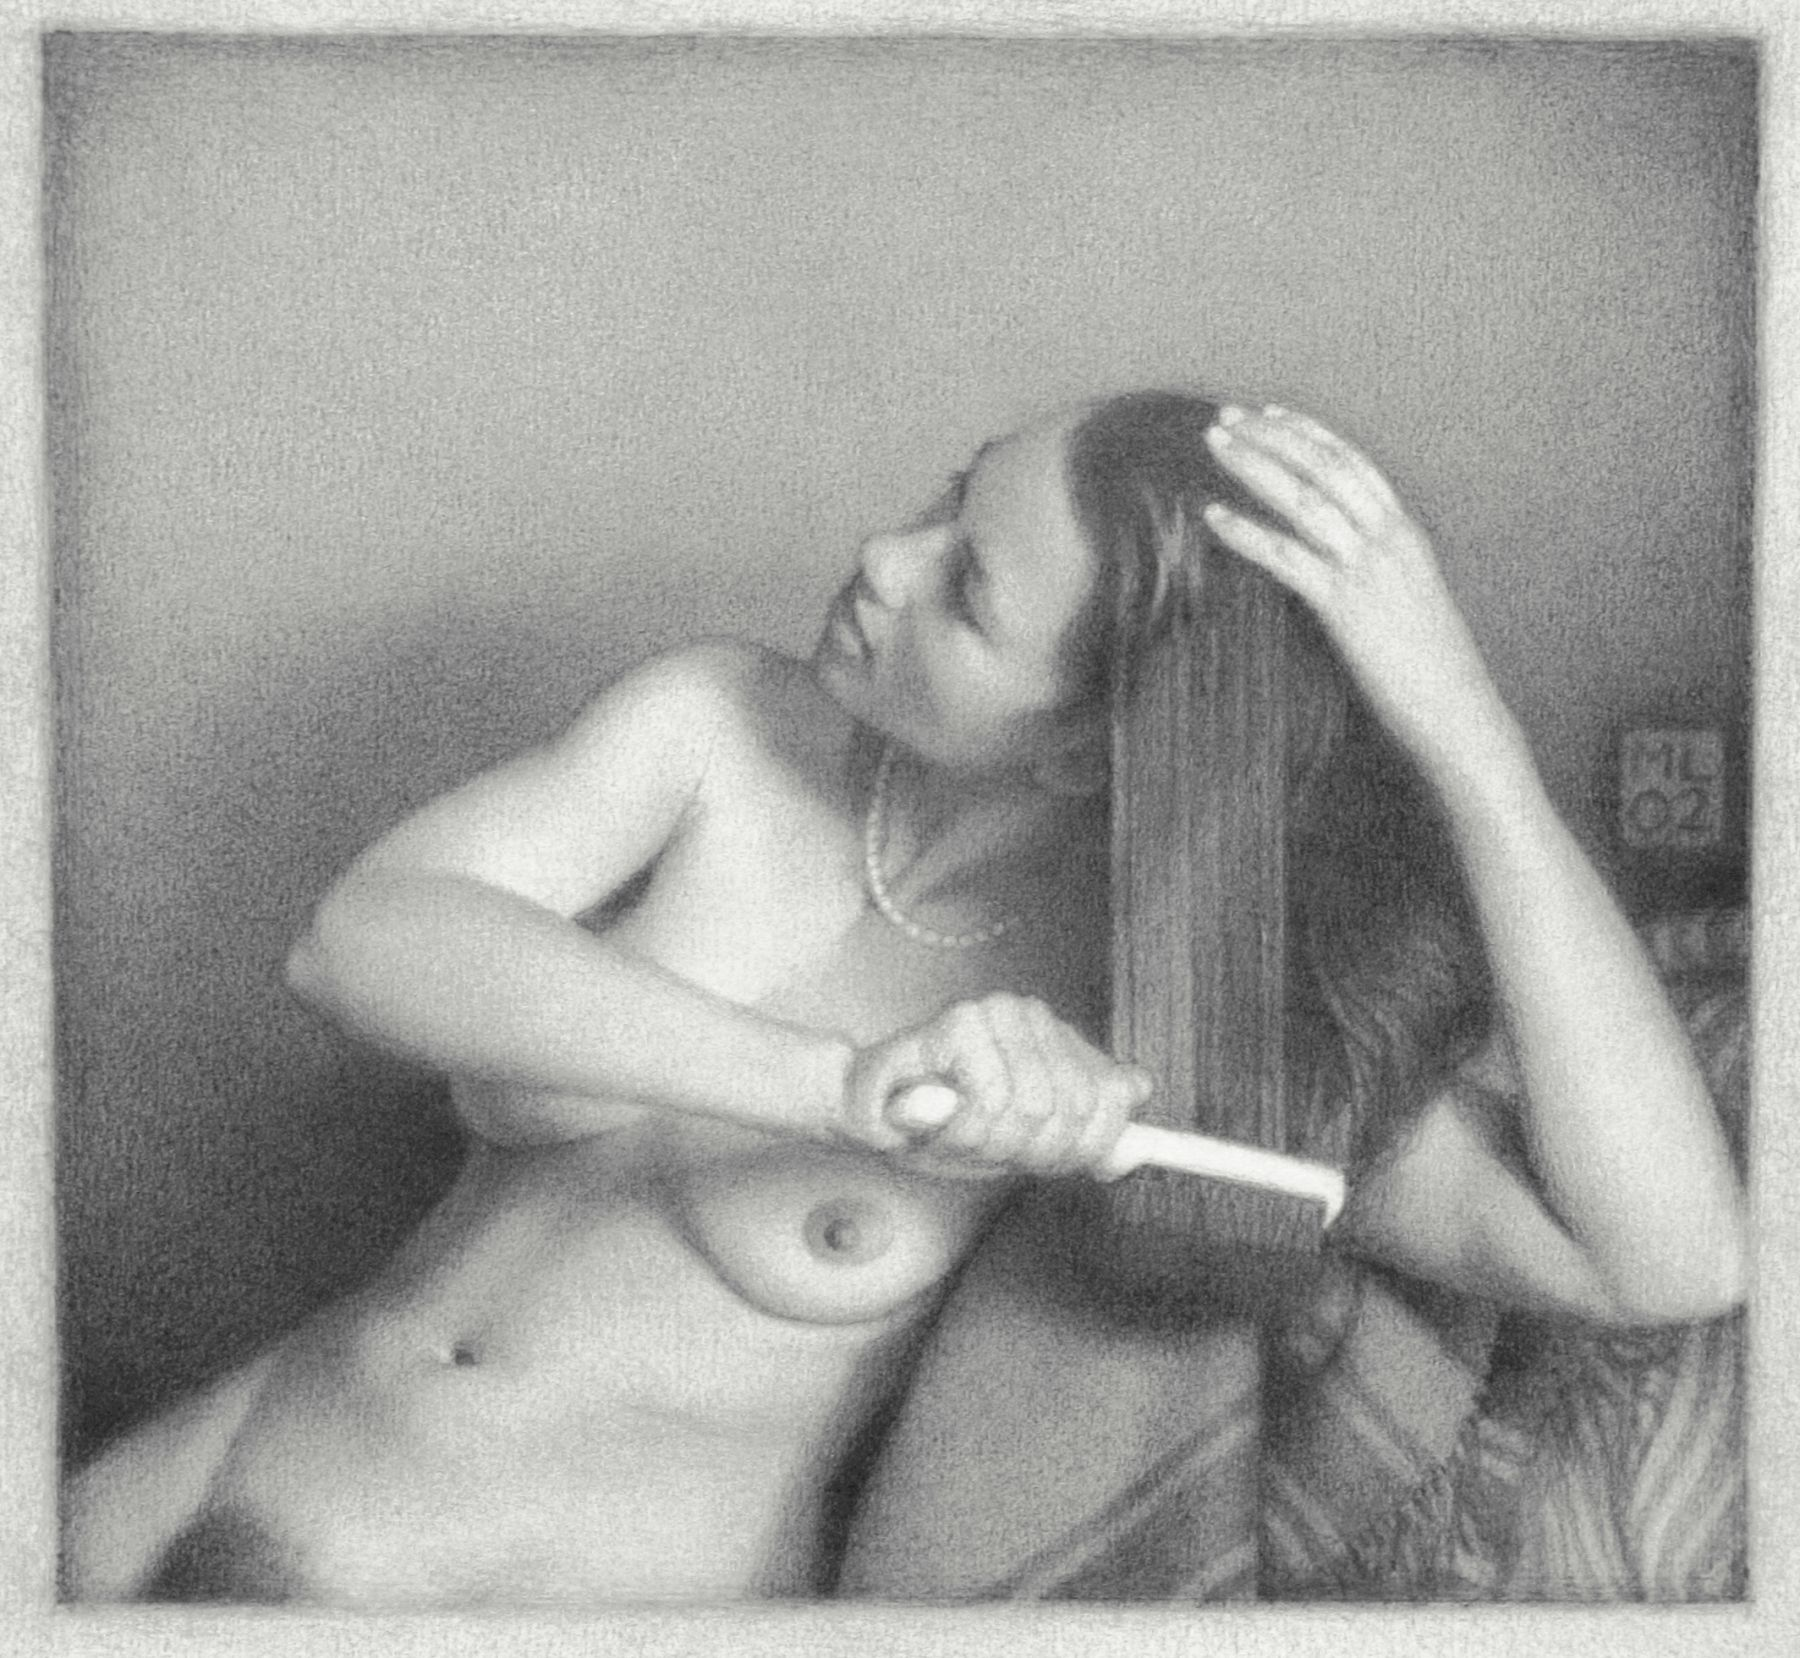 Michael Leonard, White Hairbrush, 2002, graphite pencil on paper, 7 1/8 x 7 3/4 inches